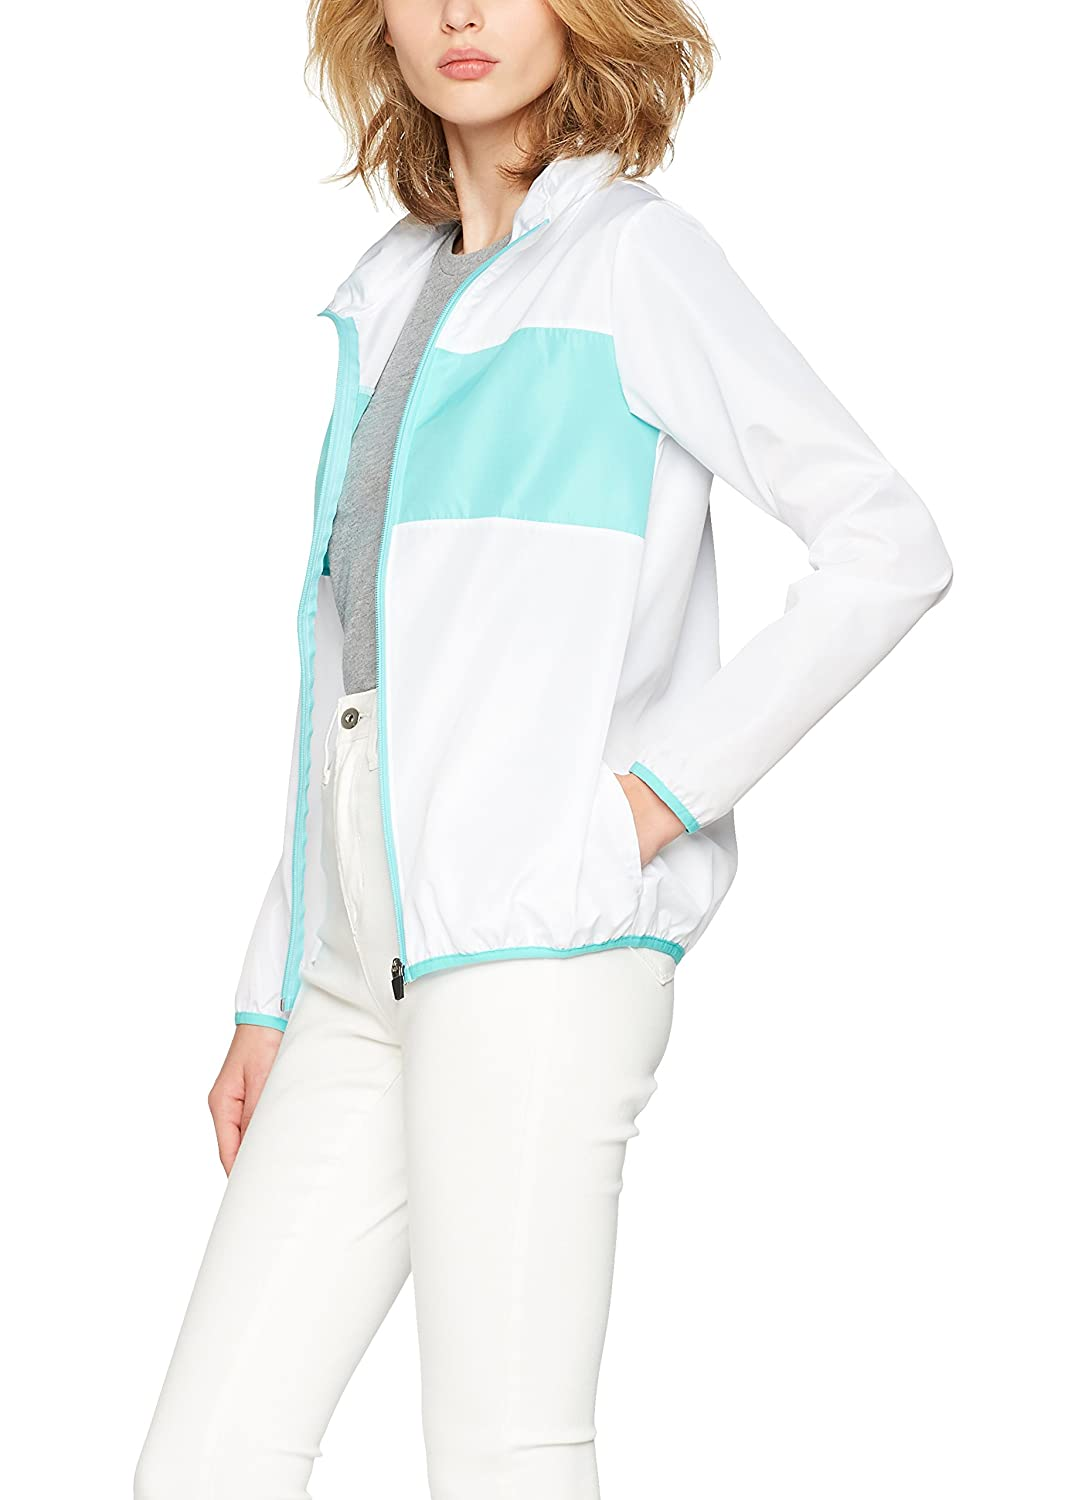 Iris & Lilly Women's Track Jacket Hooded with Long Sleeves SFP-1-l-8